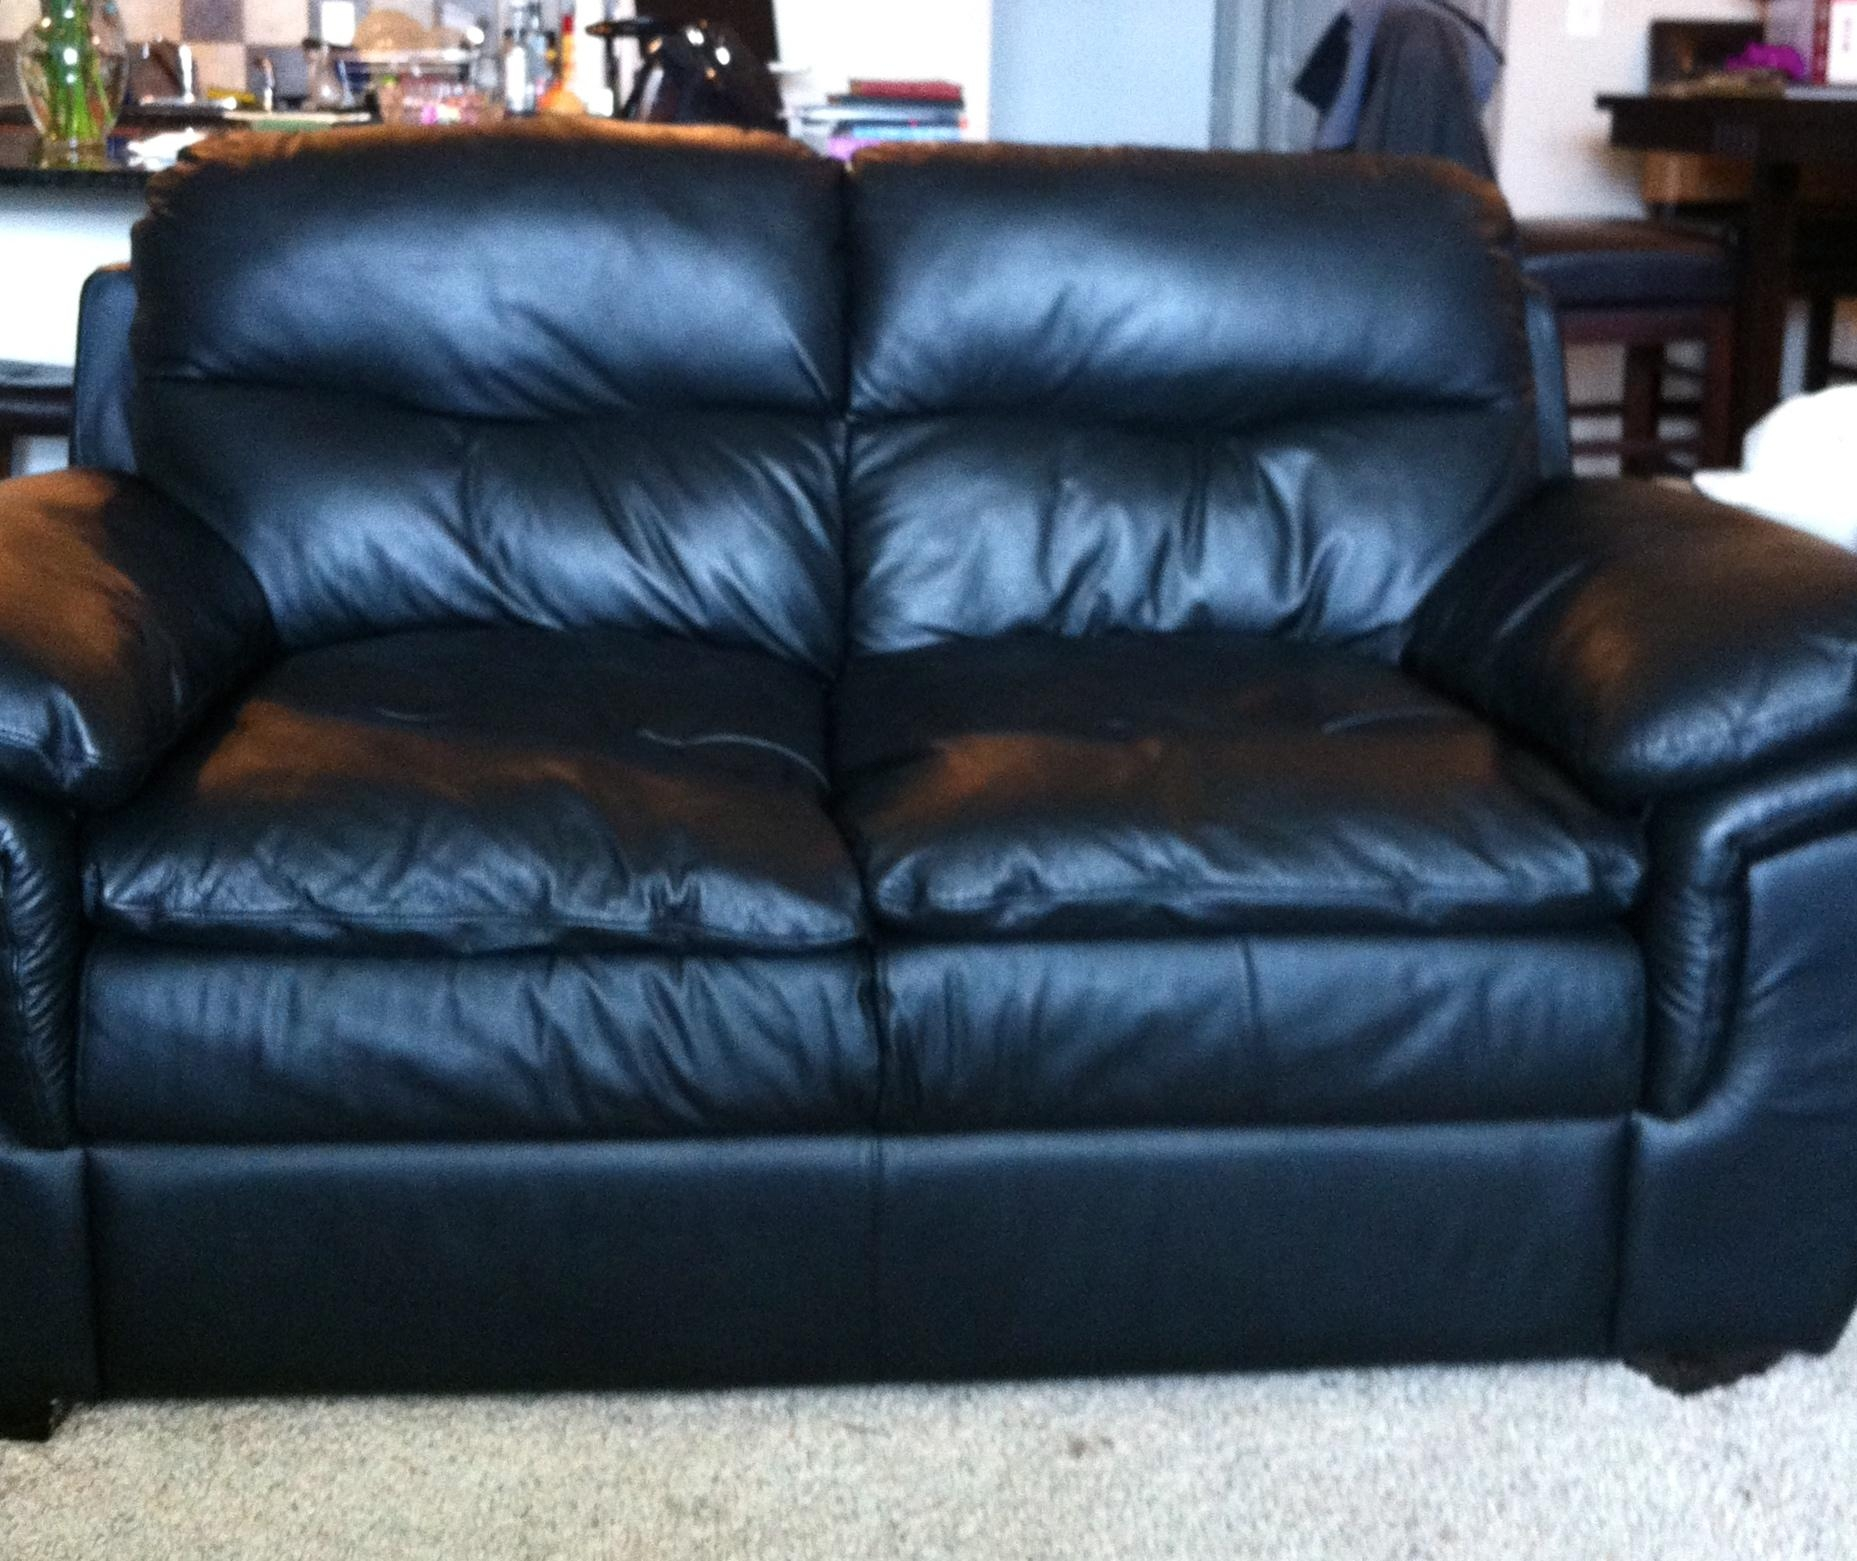 Furniture Black Leather Couches For Sale | Newmediahub With Black Leather Sofas And Loveseats (Image 14 of 20)